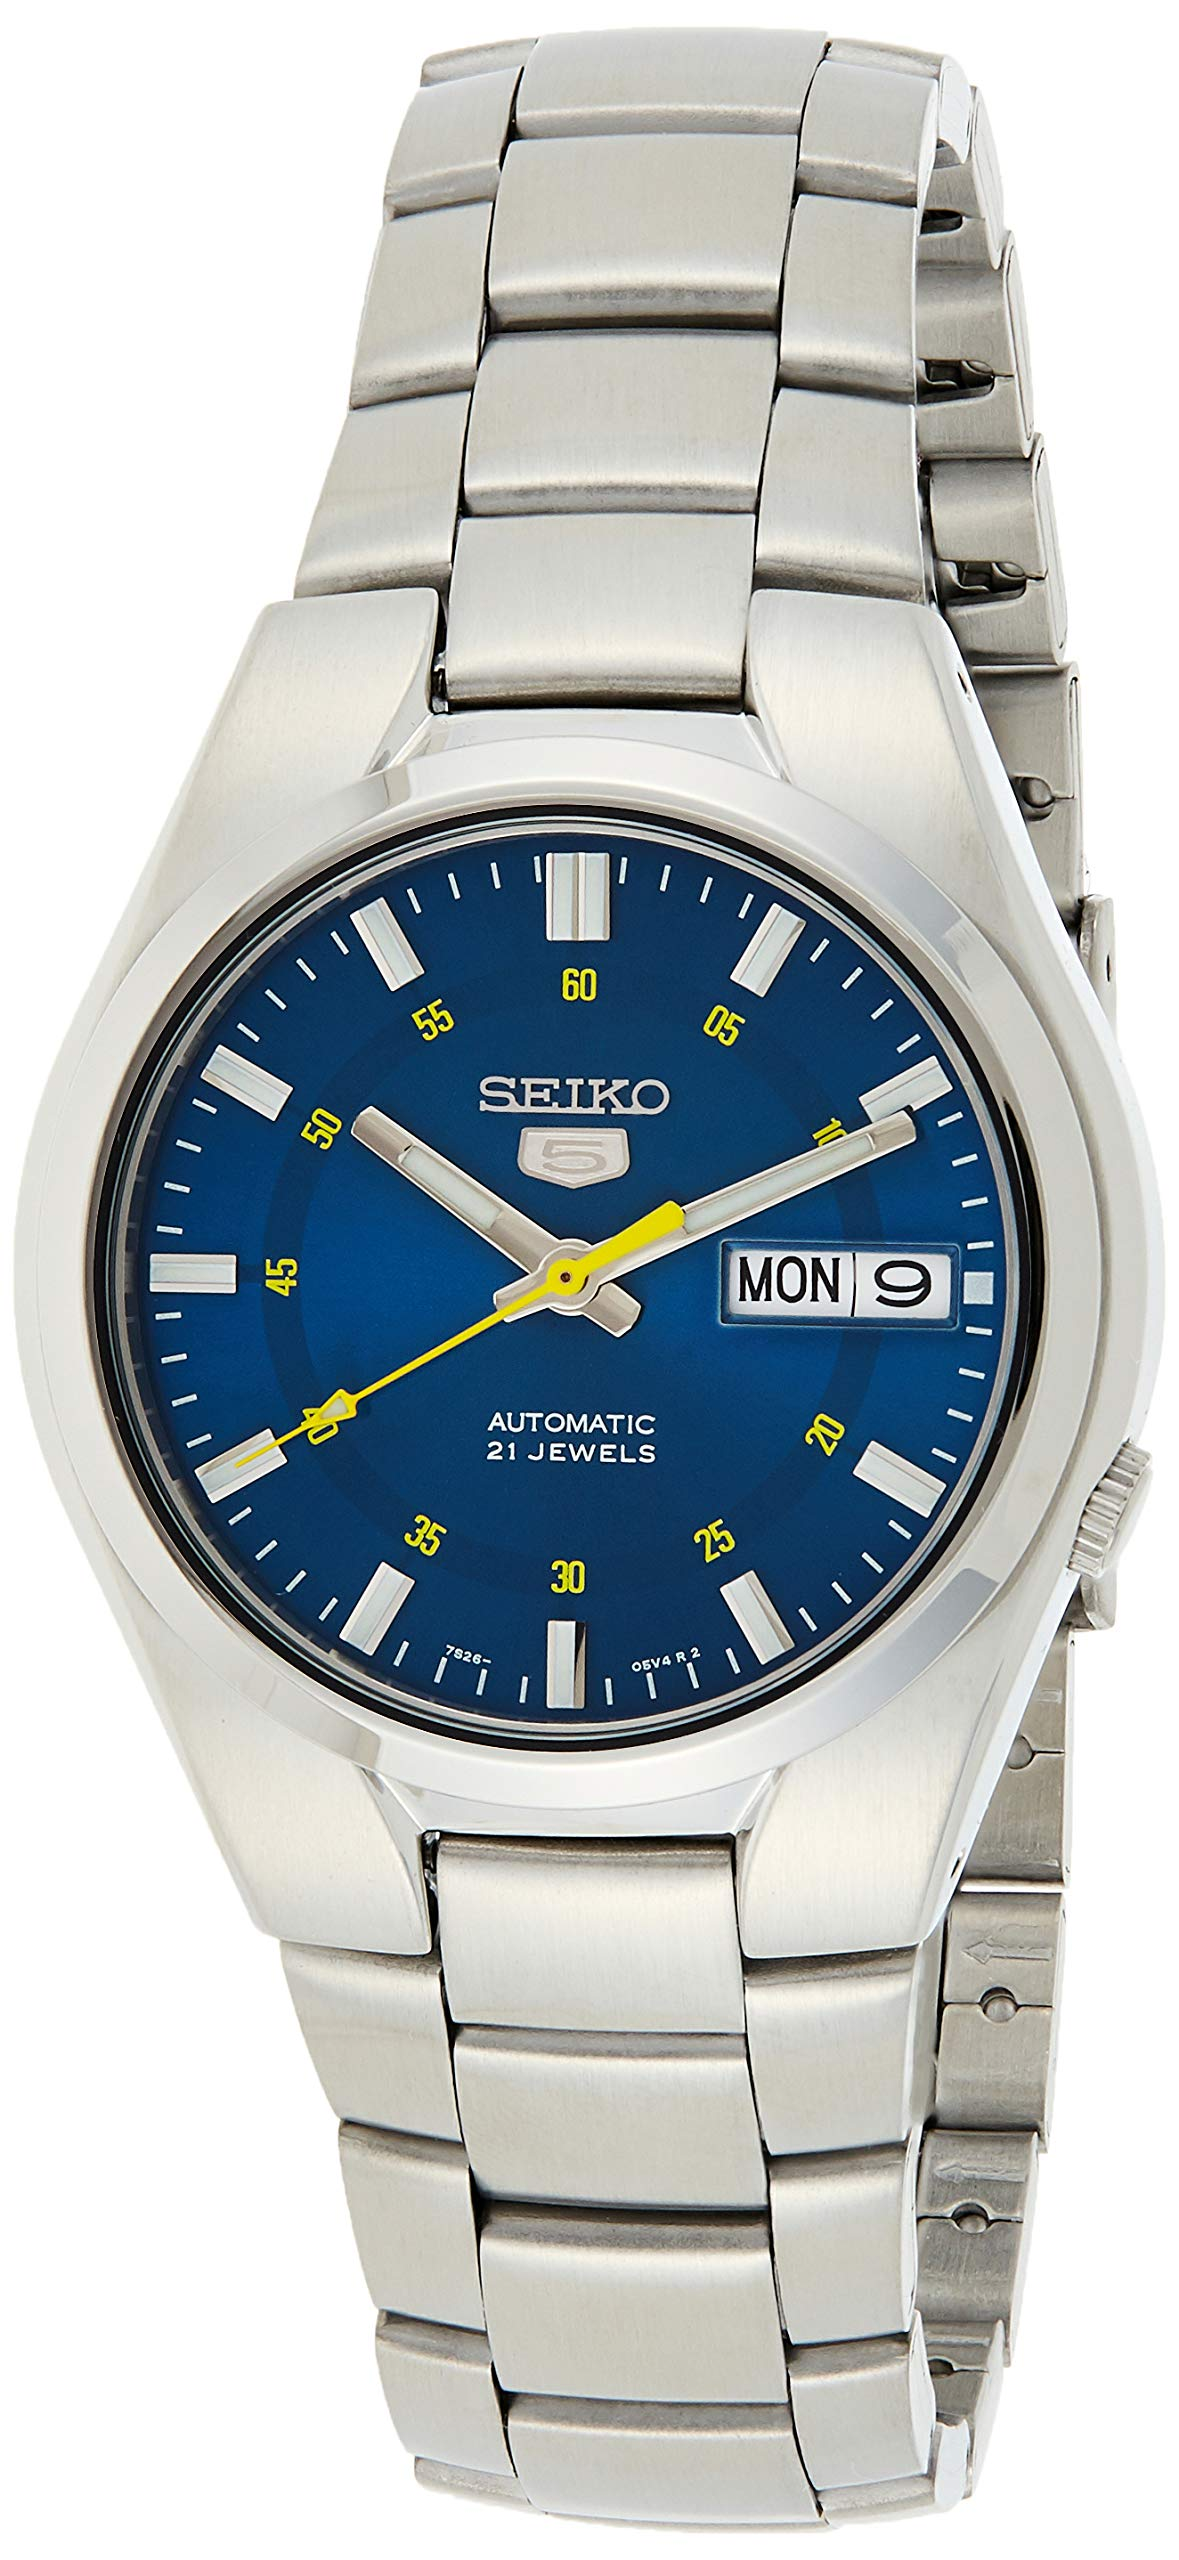 Men's SNK615 Automatic Stainless Steel Watch